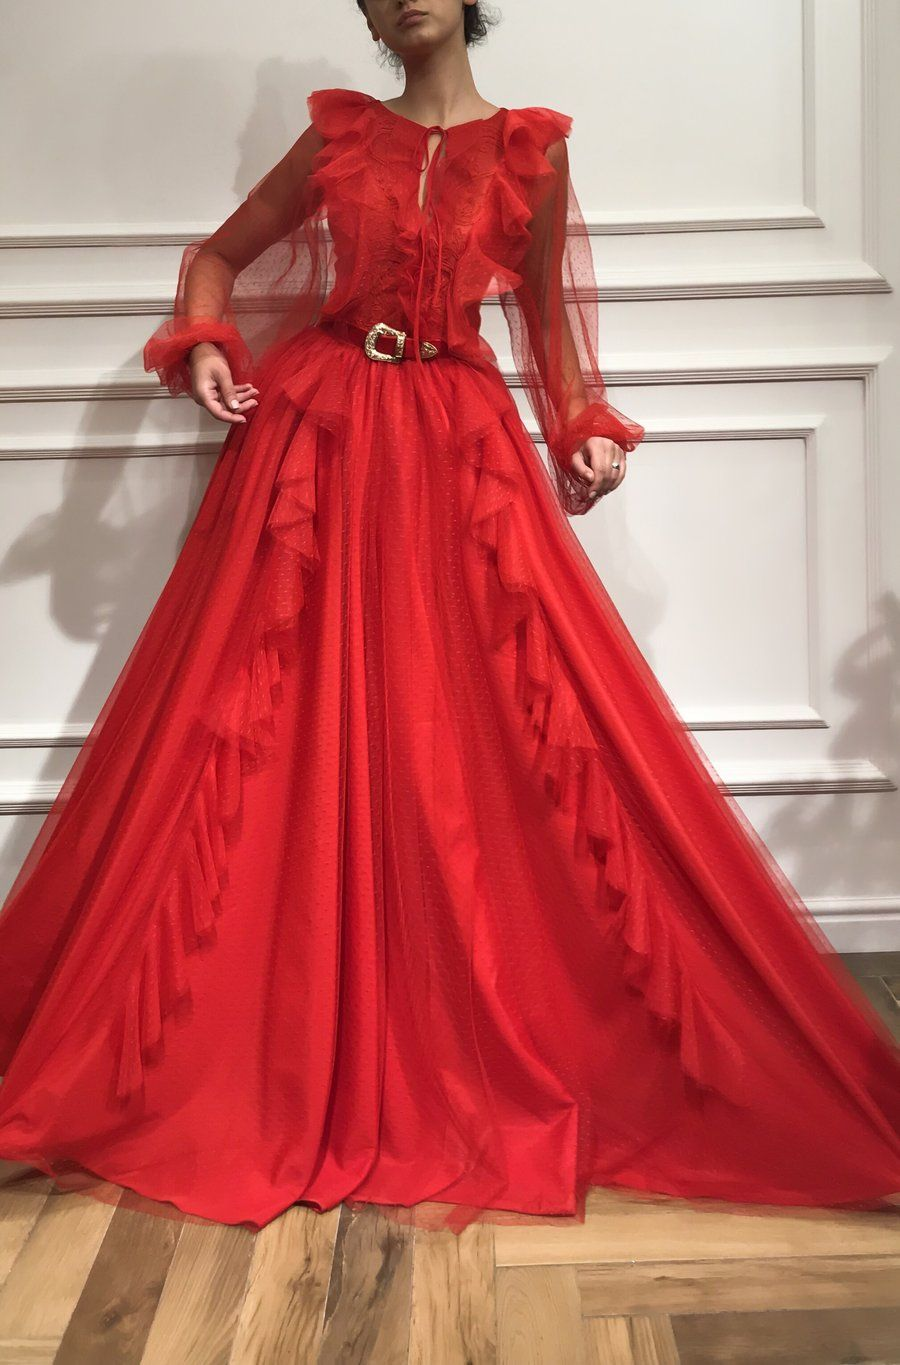 Alizarin Affection Gown Gowns Evening Dresses Long Dresses